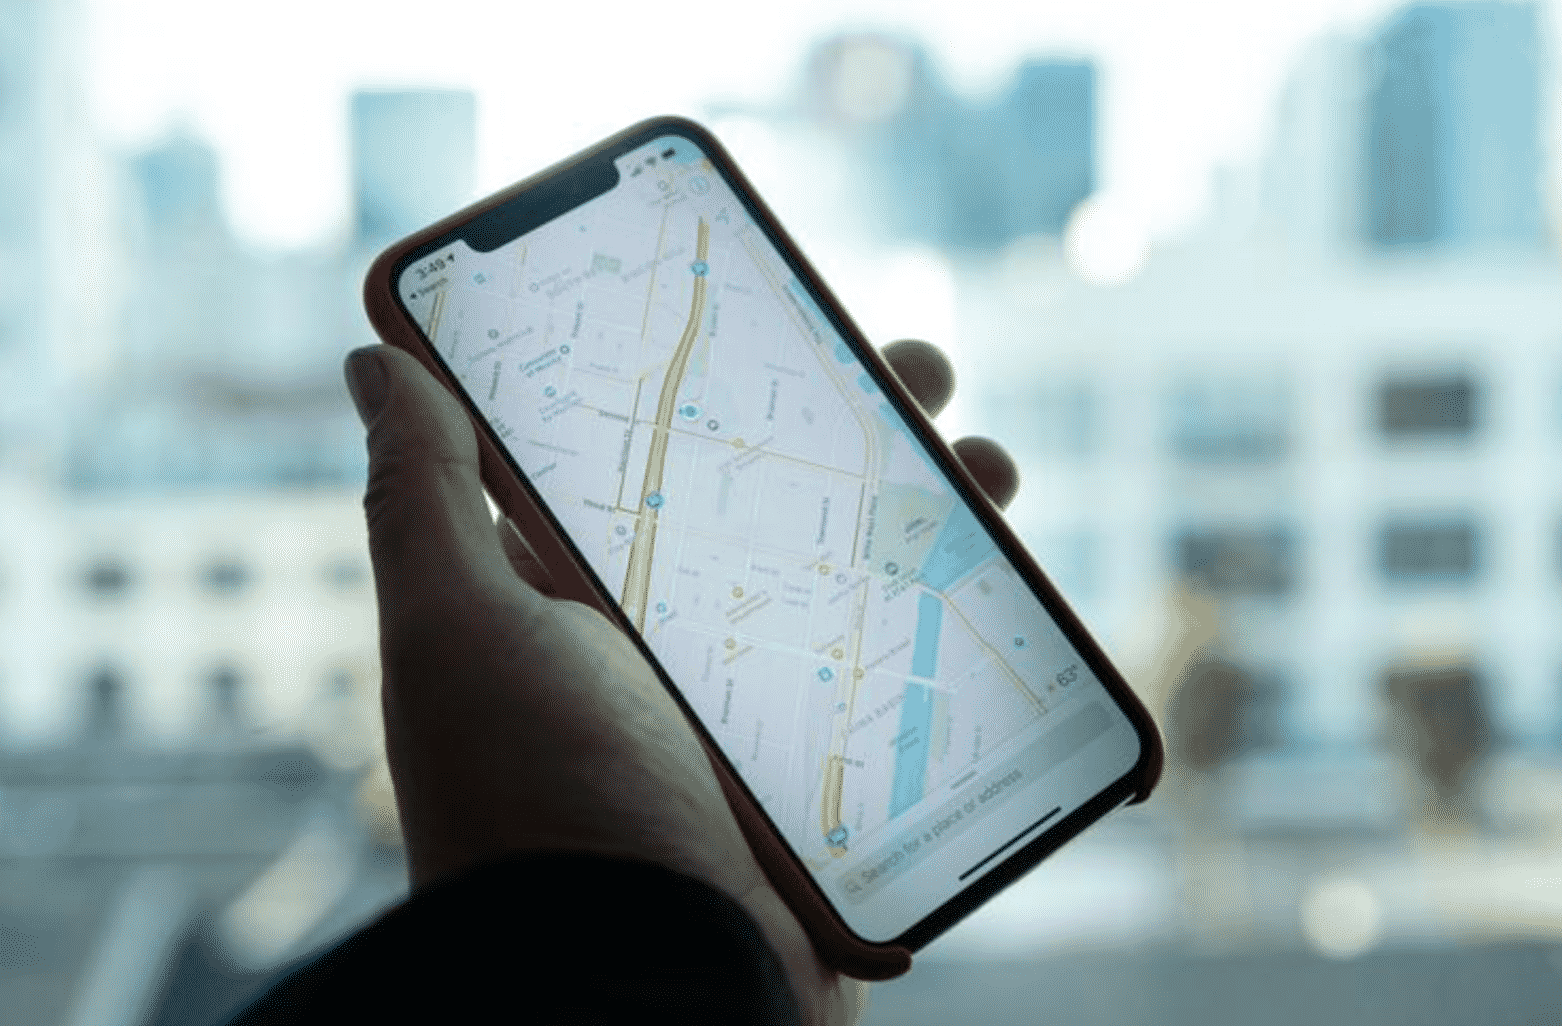 COVID 19: Government tracking phones a solution or a breach of privacy?